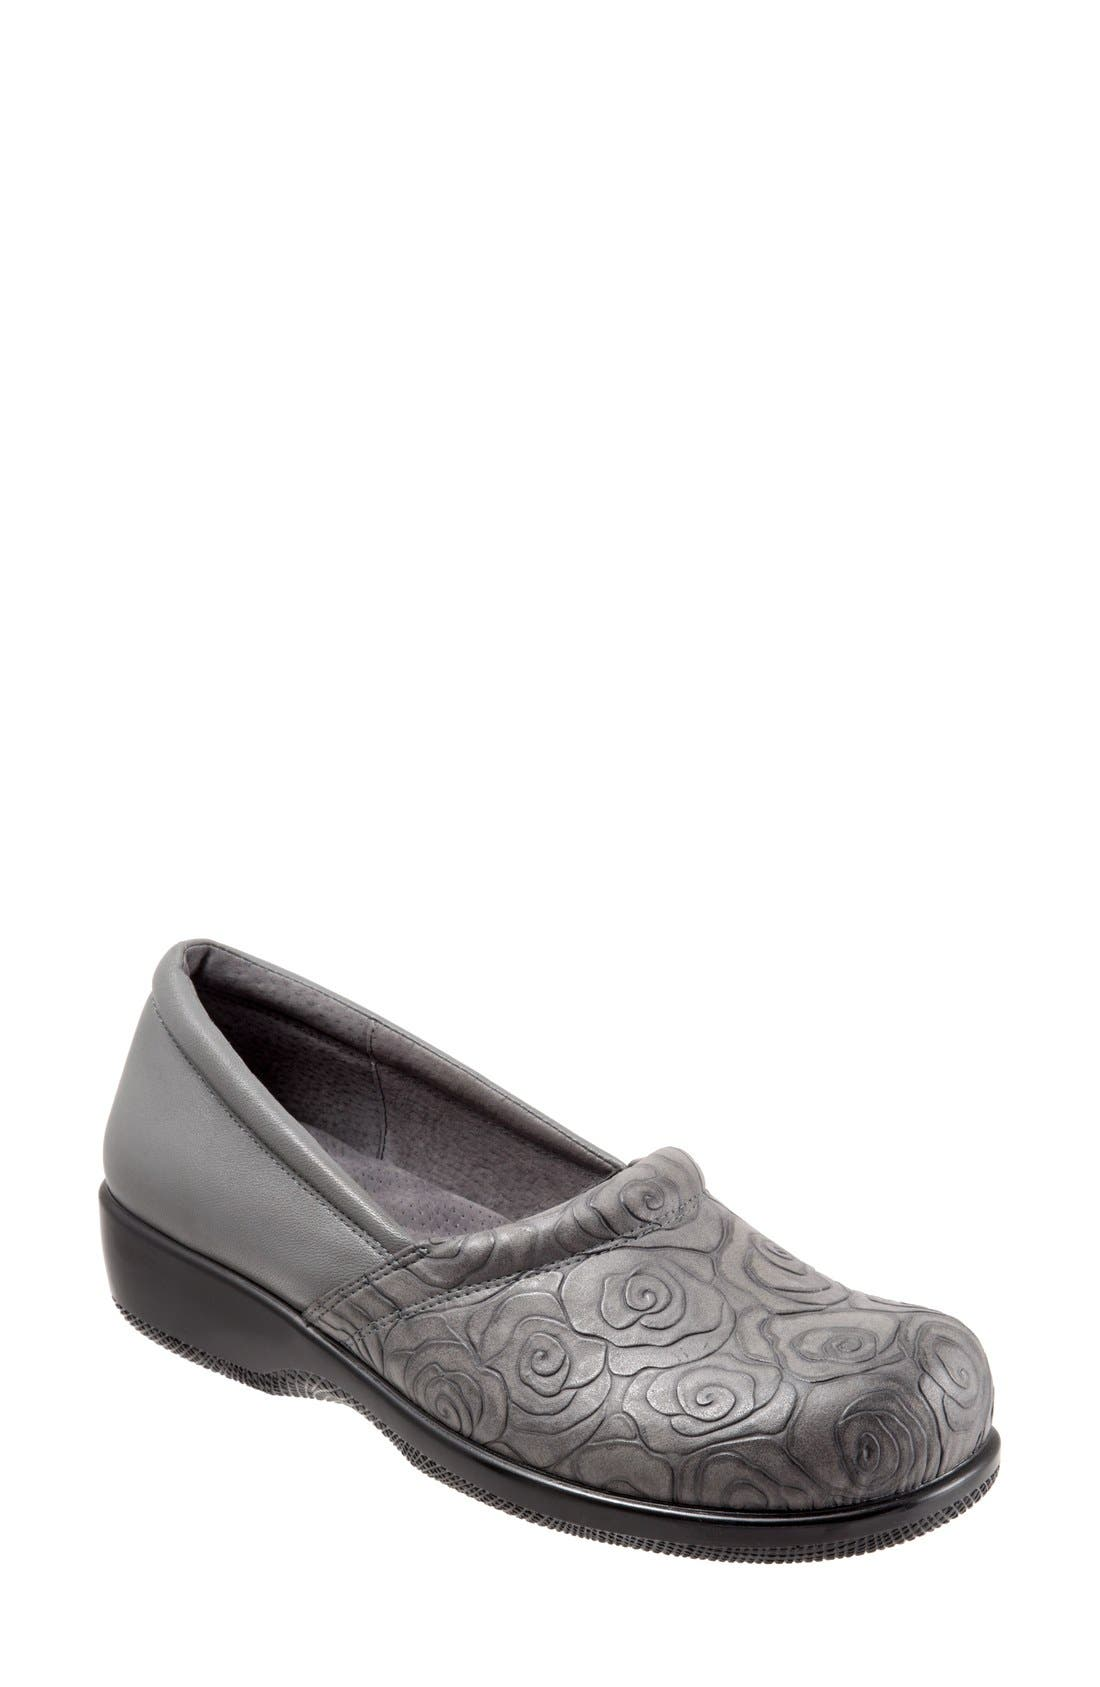 SOFTWALK<SUP>®</SUP>, 'Adora' Slip-On, Main thumbnail 1, color, GREY ROSE LEATHER